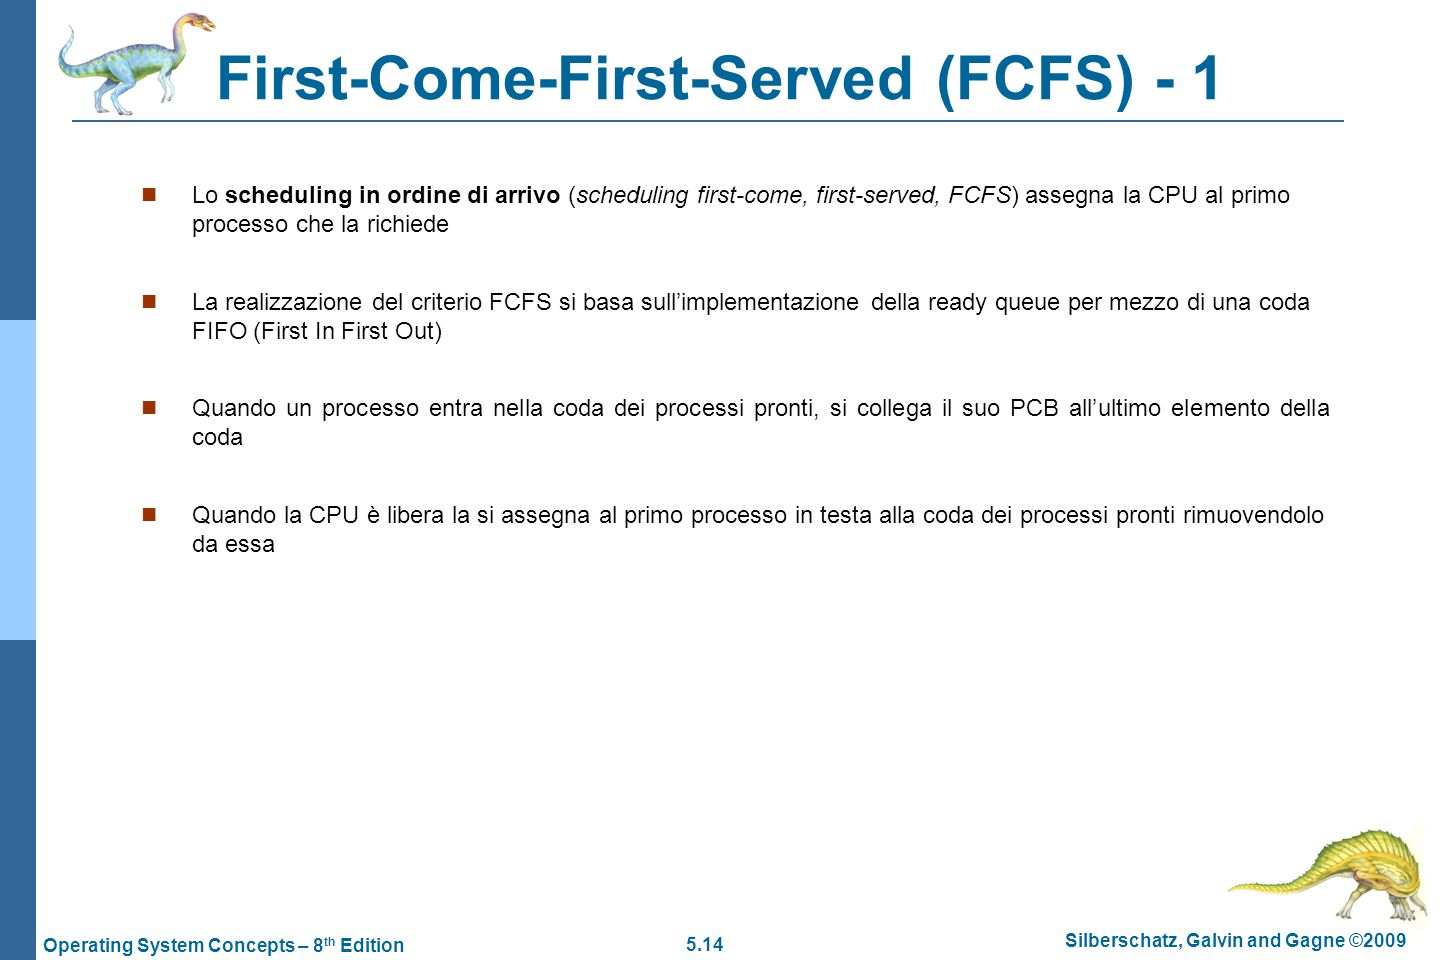 First-Come-First-Served (FCFS) - 1